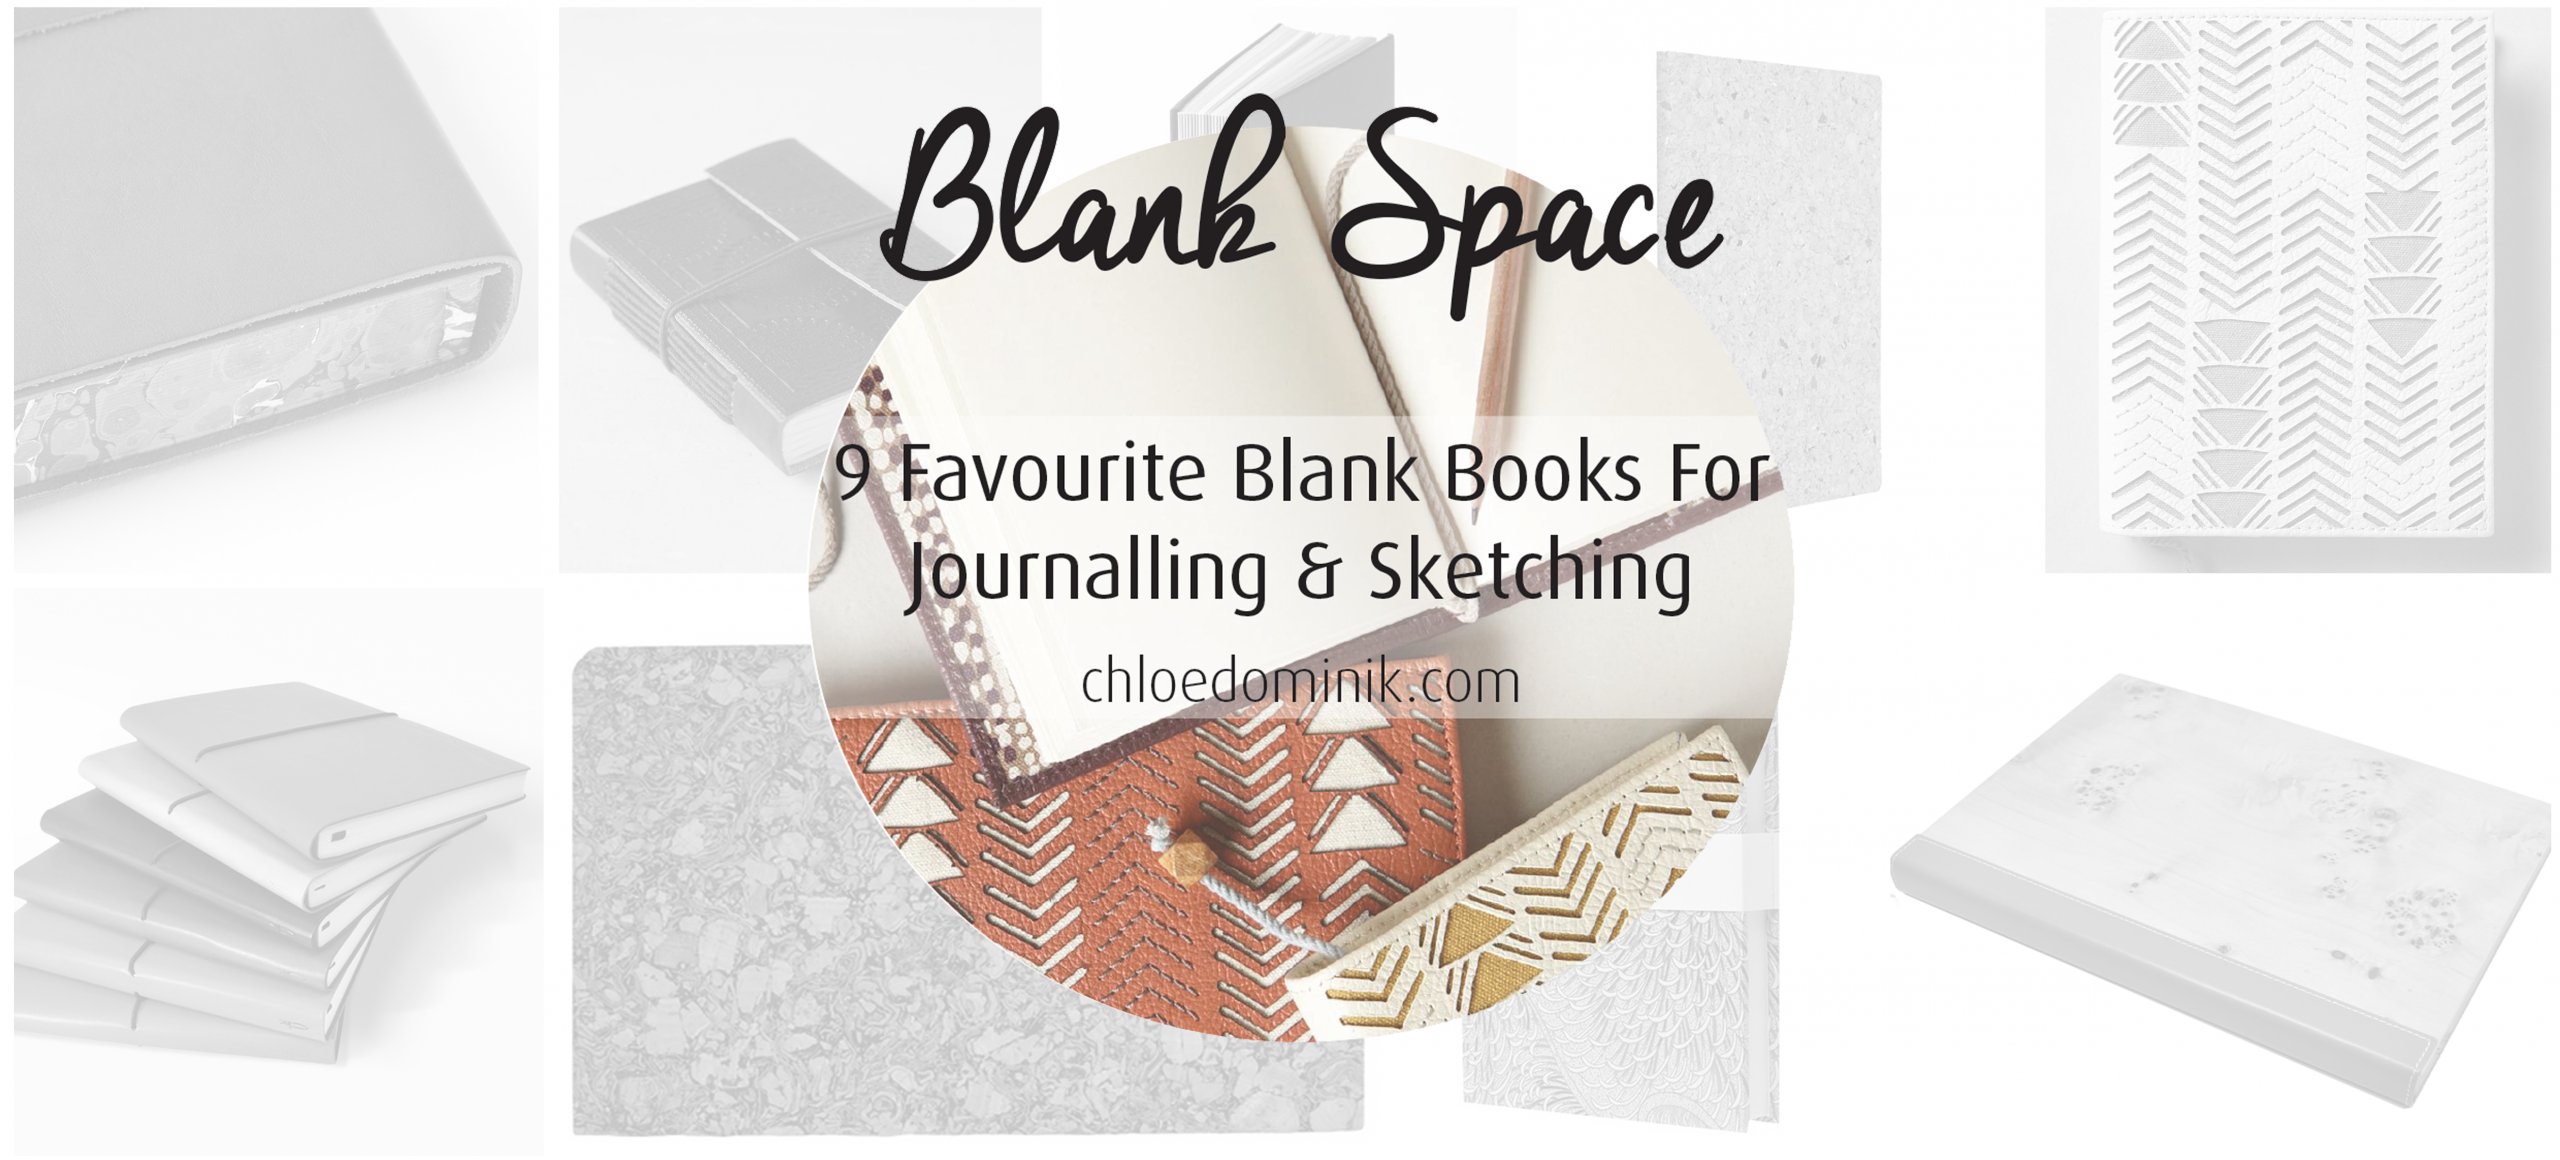 Blank Space: 9 Favourite Blanks Books For Journalling & Sketching